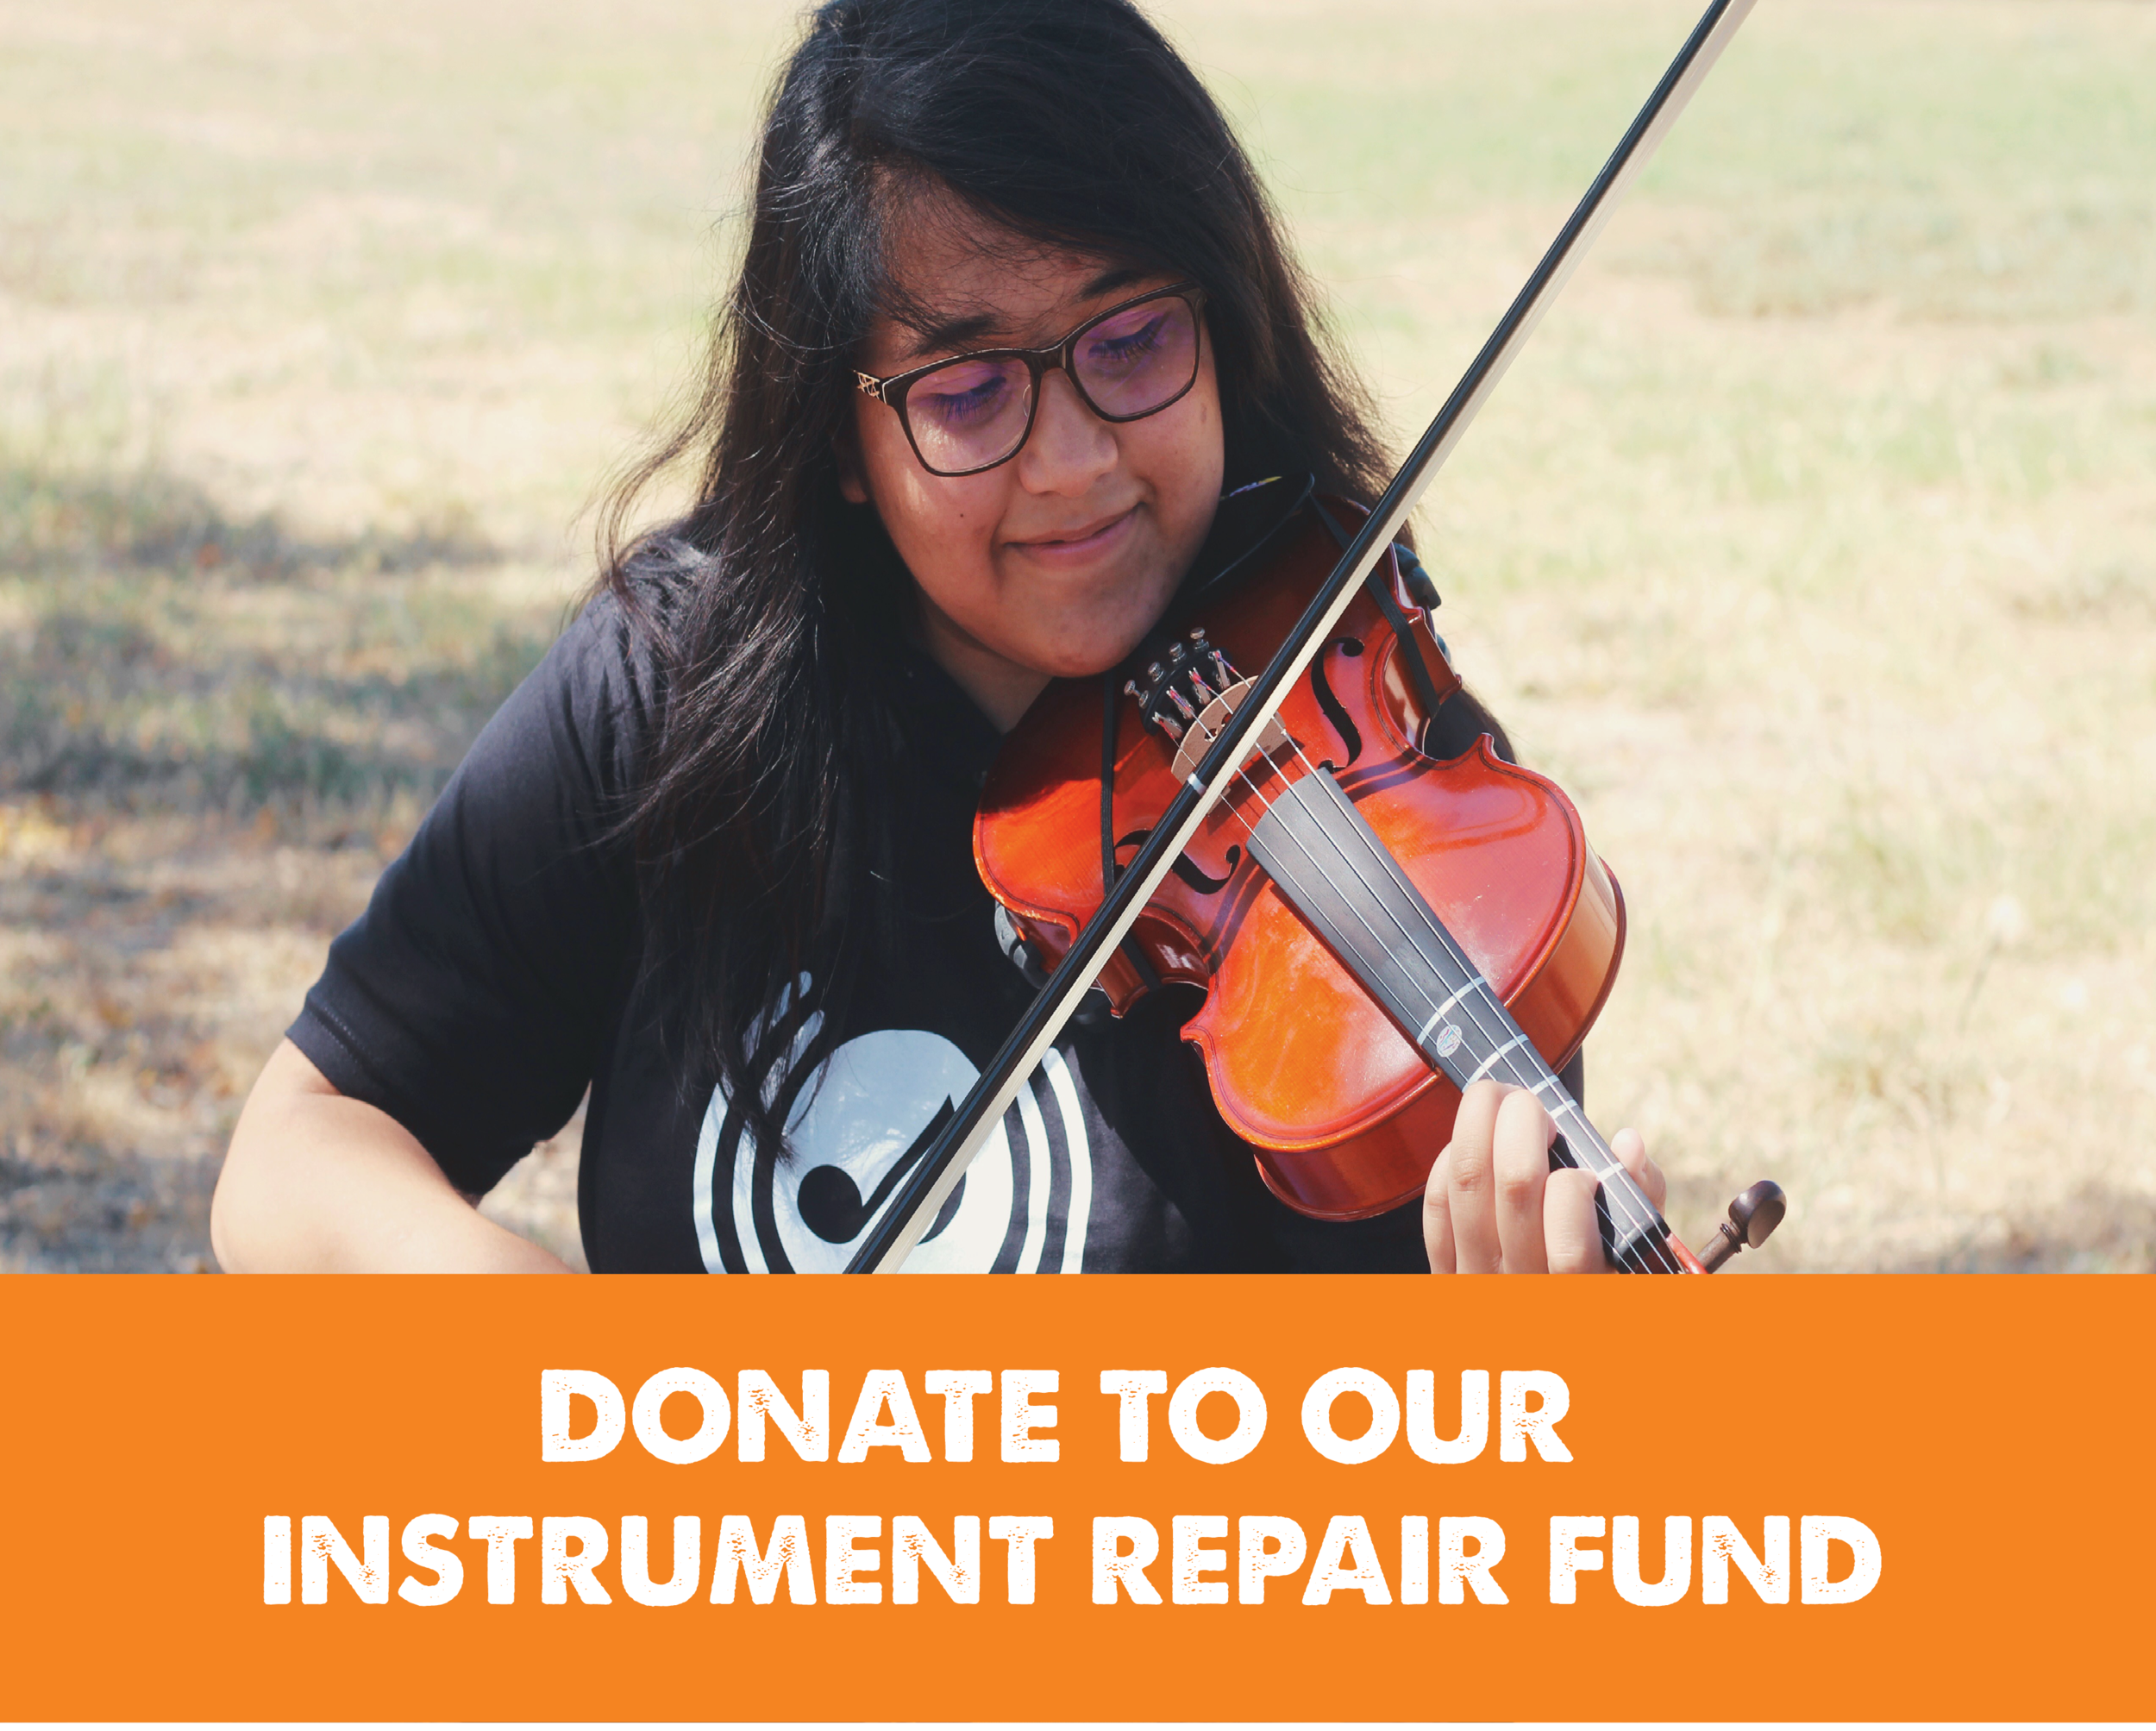 Don't have an instrument? Donate to our instrument repair fund! Just write 'instrument repair' in our comment box when you donate.